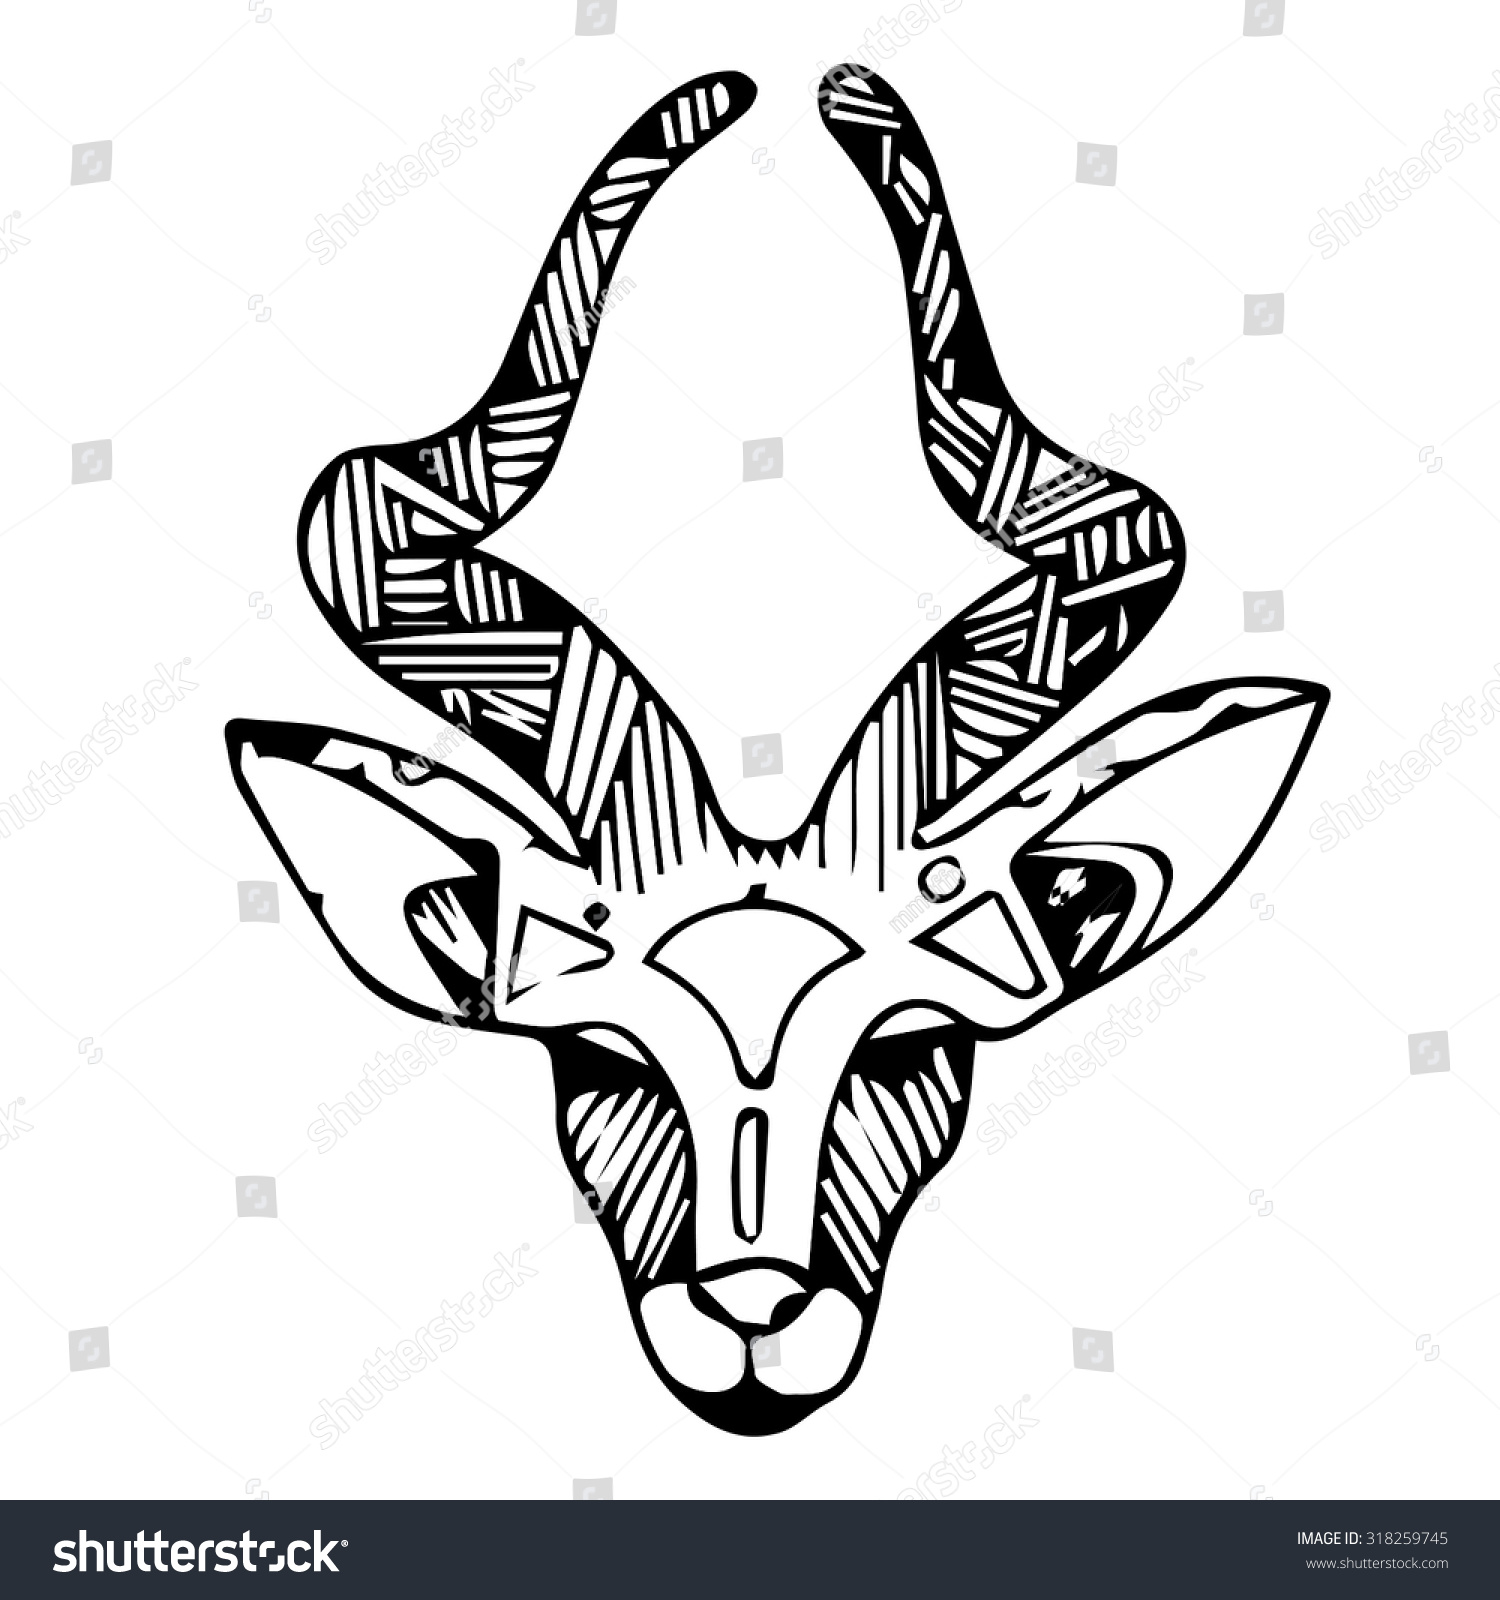 Drawing Lines With Core Graphics : Impala animal head drawing drawings art stock vector